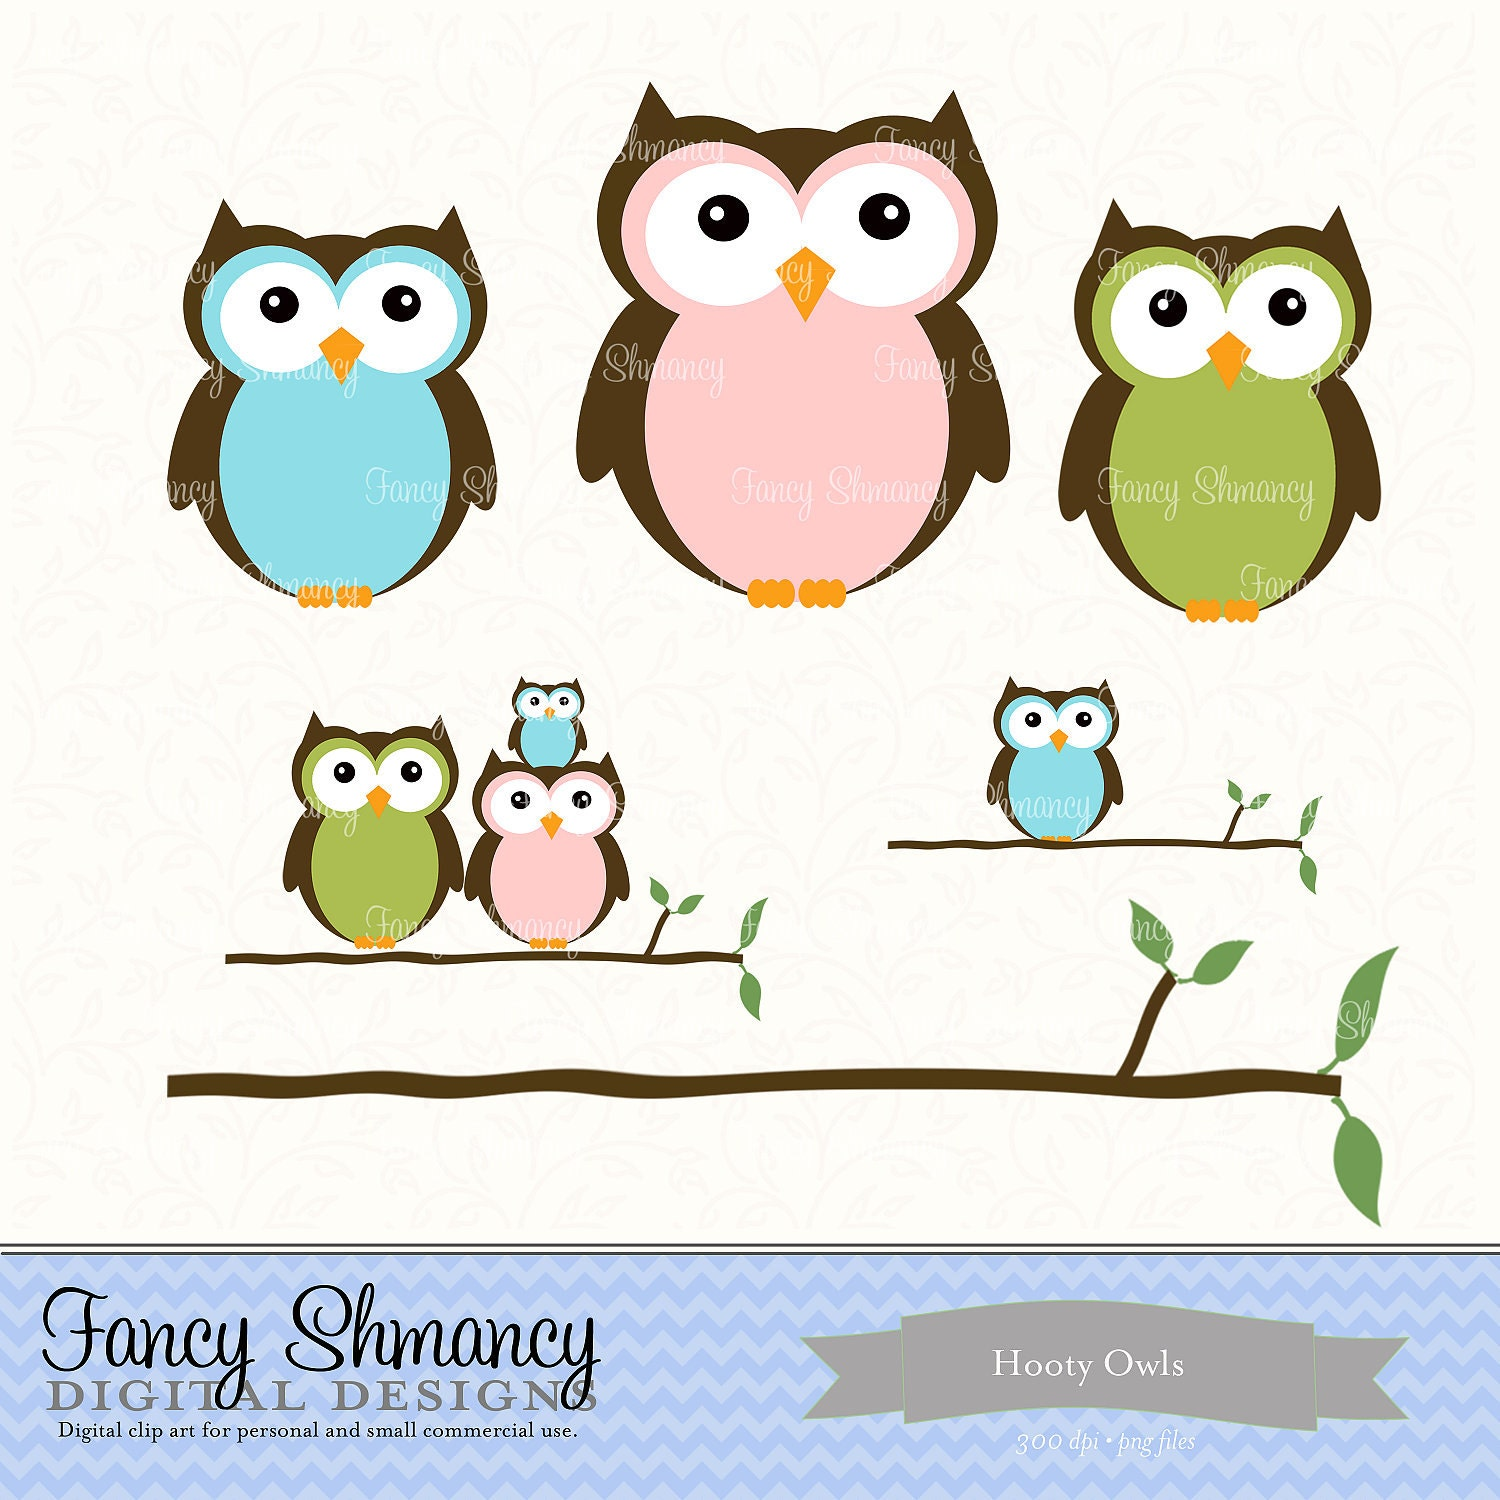 Baby Owl Clip Art Picfly HtmlBaby Owl Clipart Black And White